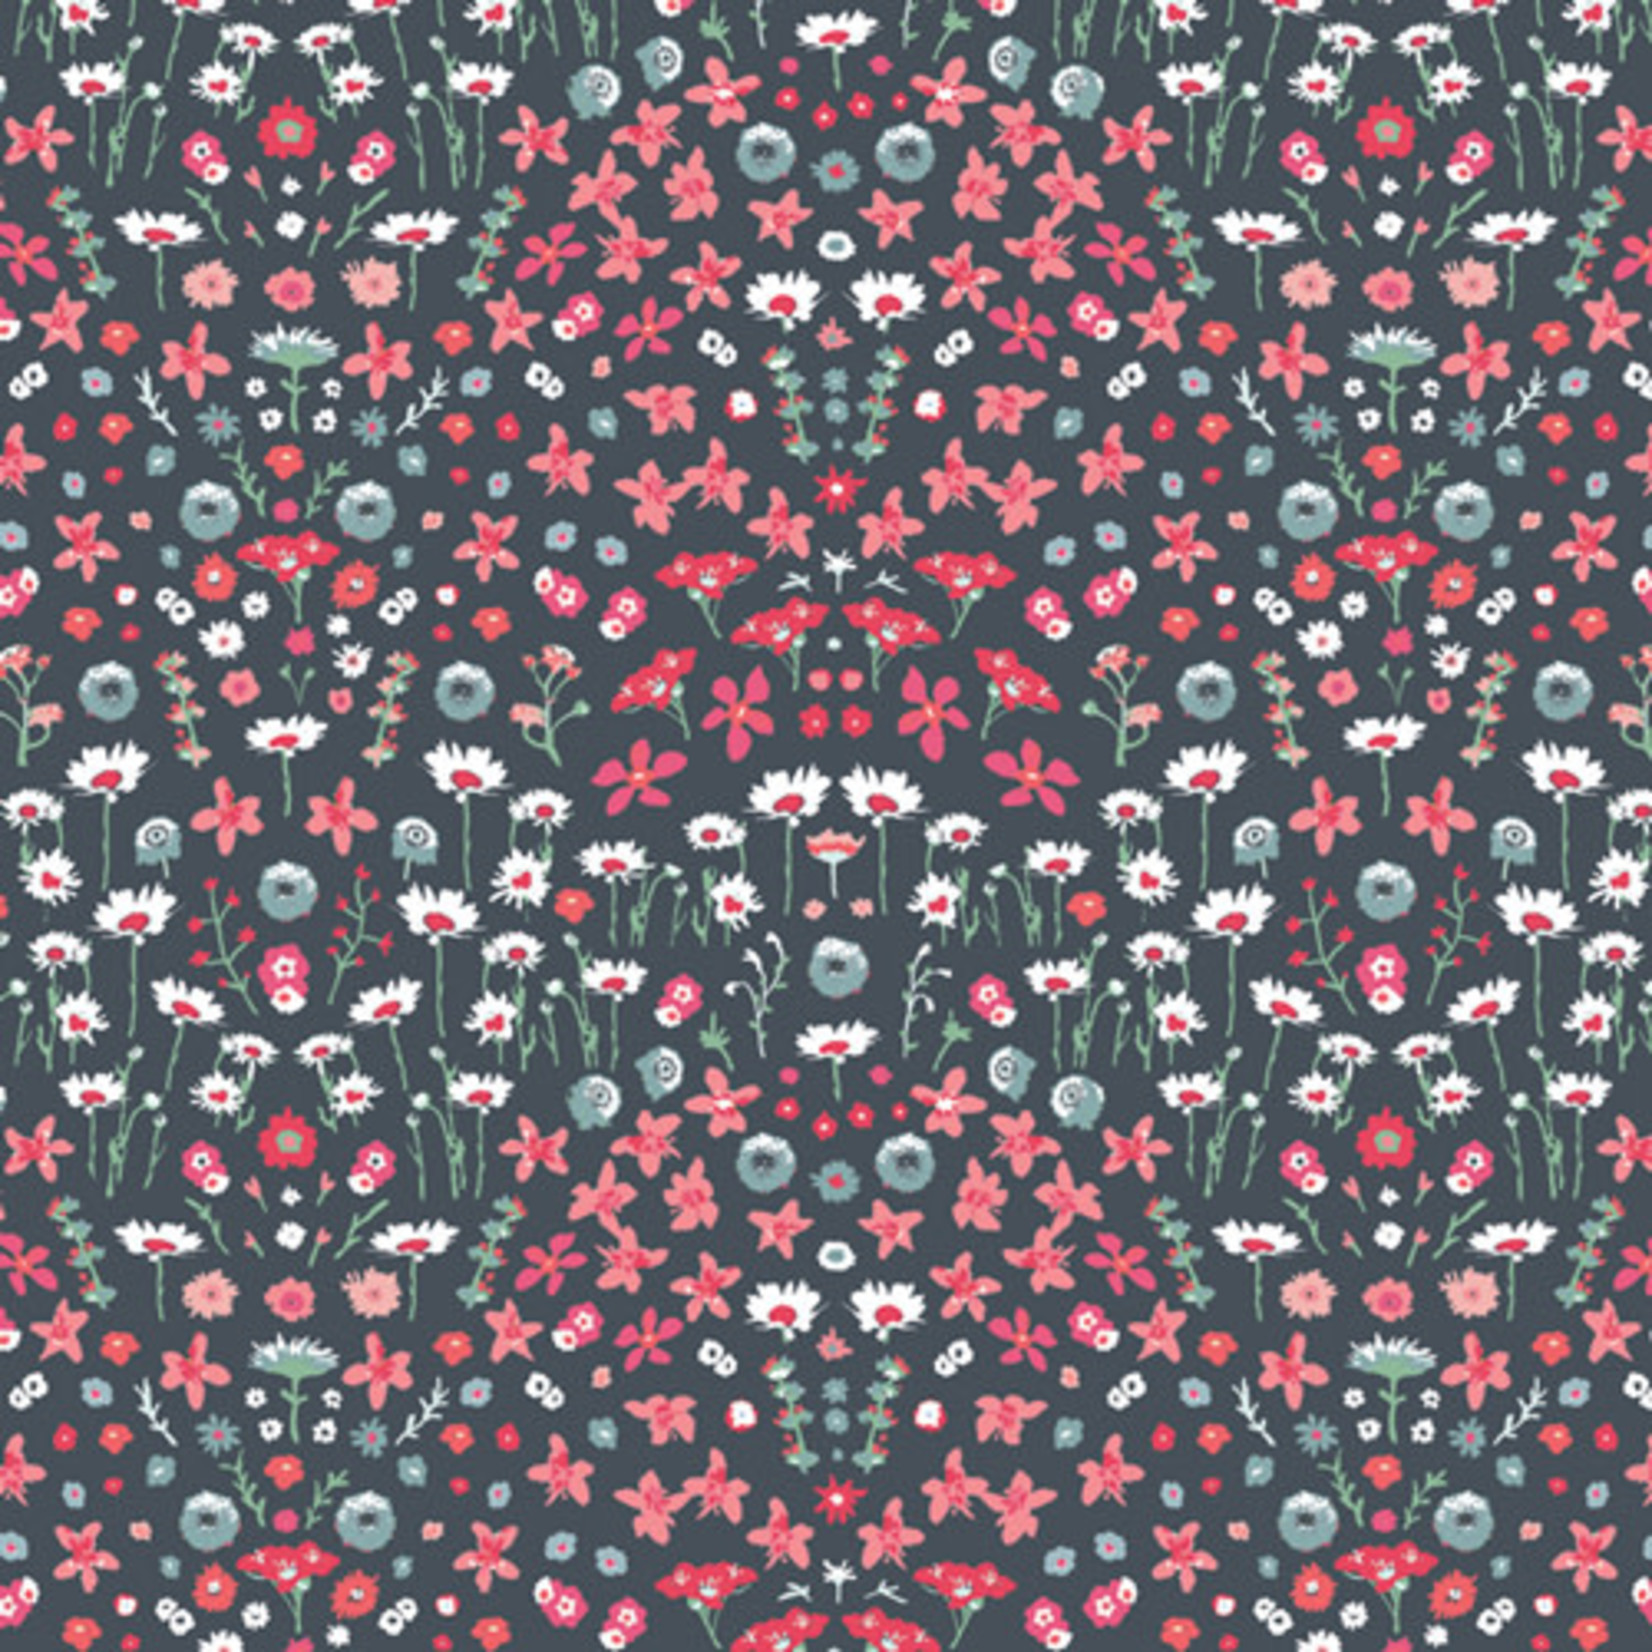 Art Gallery PICTURESQUE, PAINTED FIELD CERISE 29454 $0.20/cm or $20/m